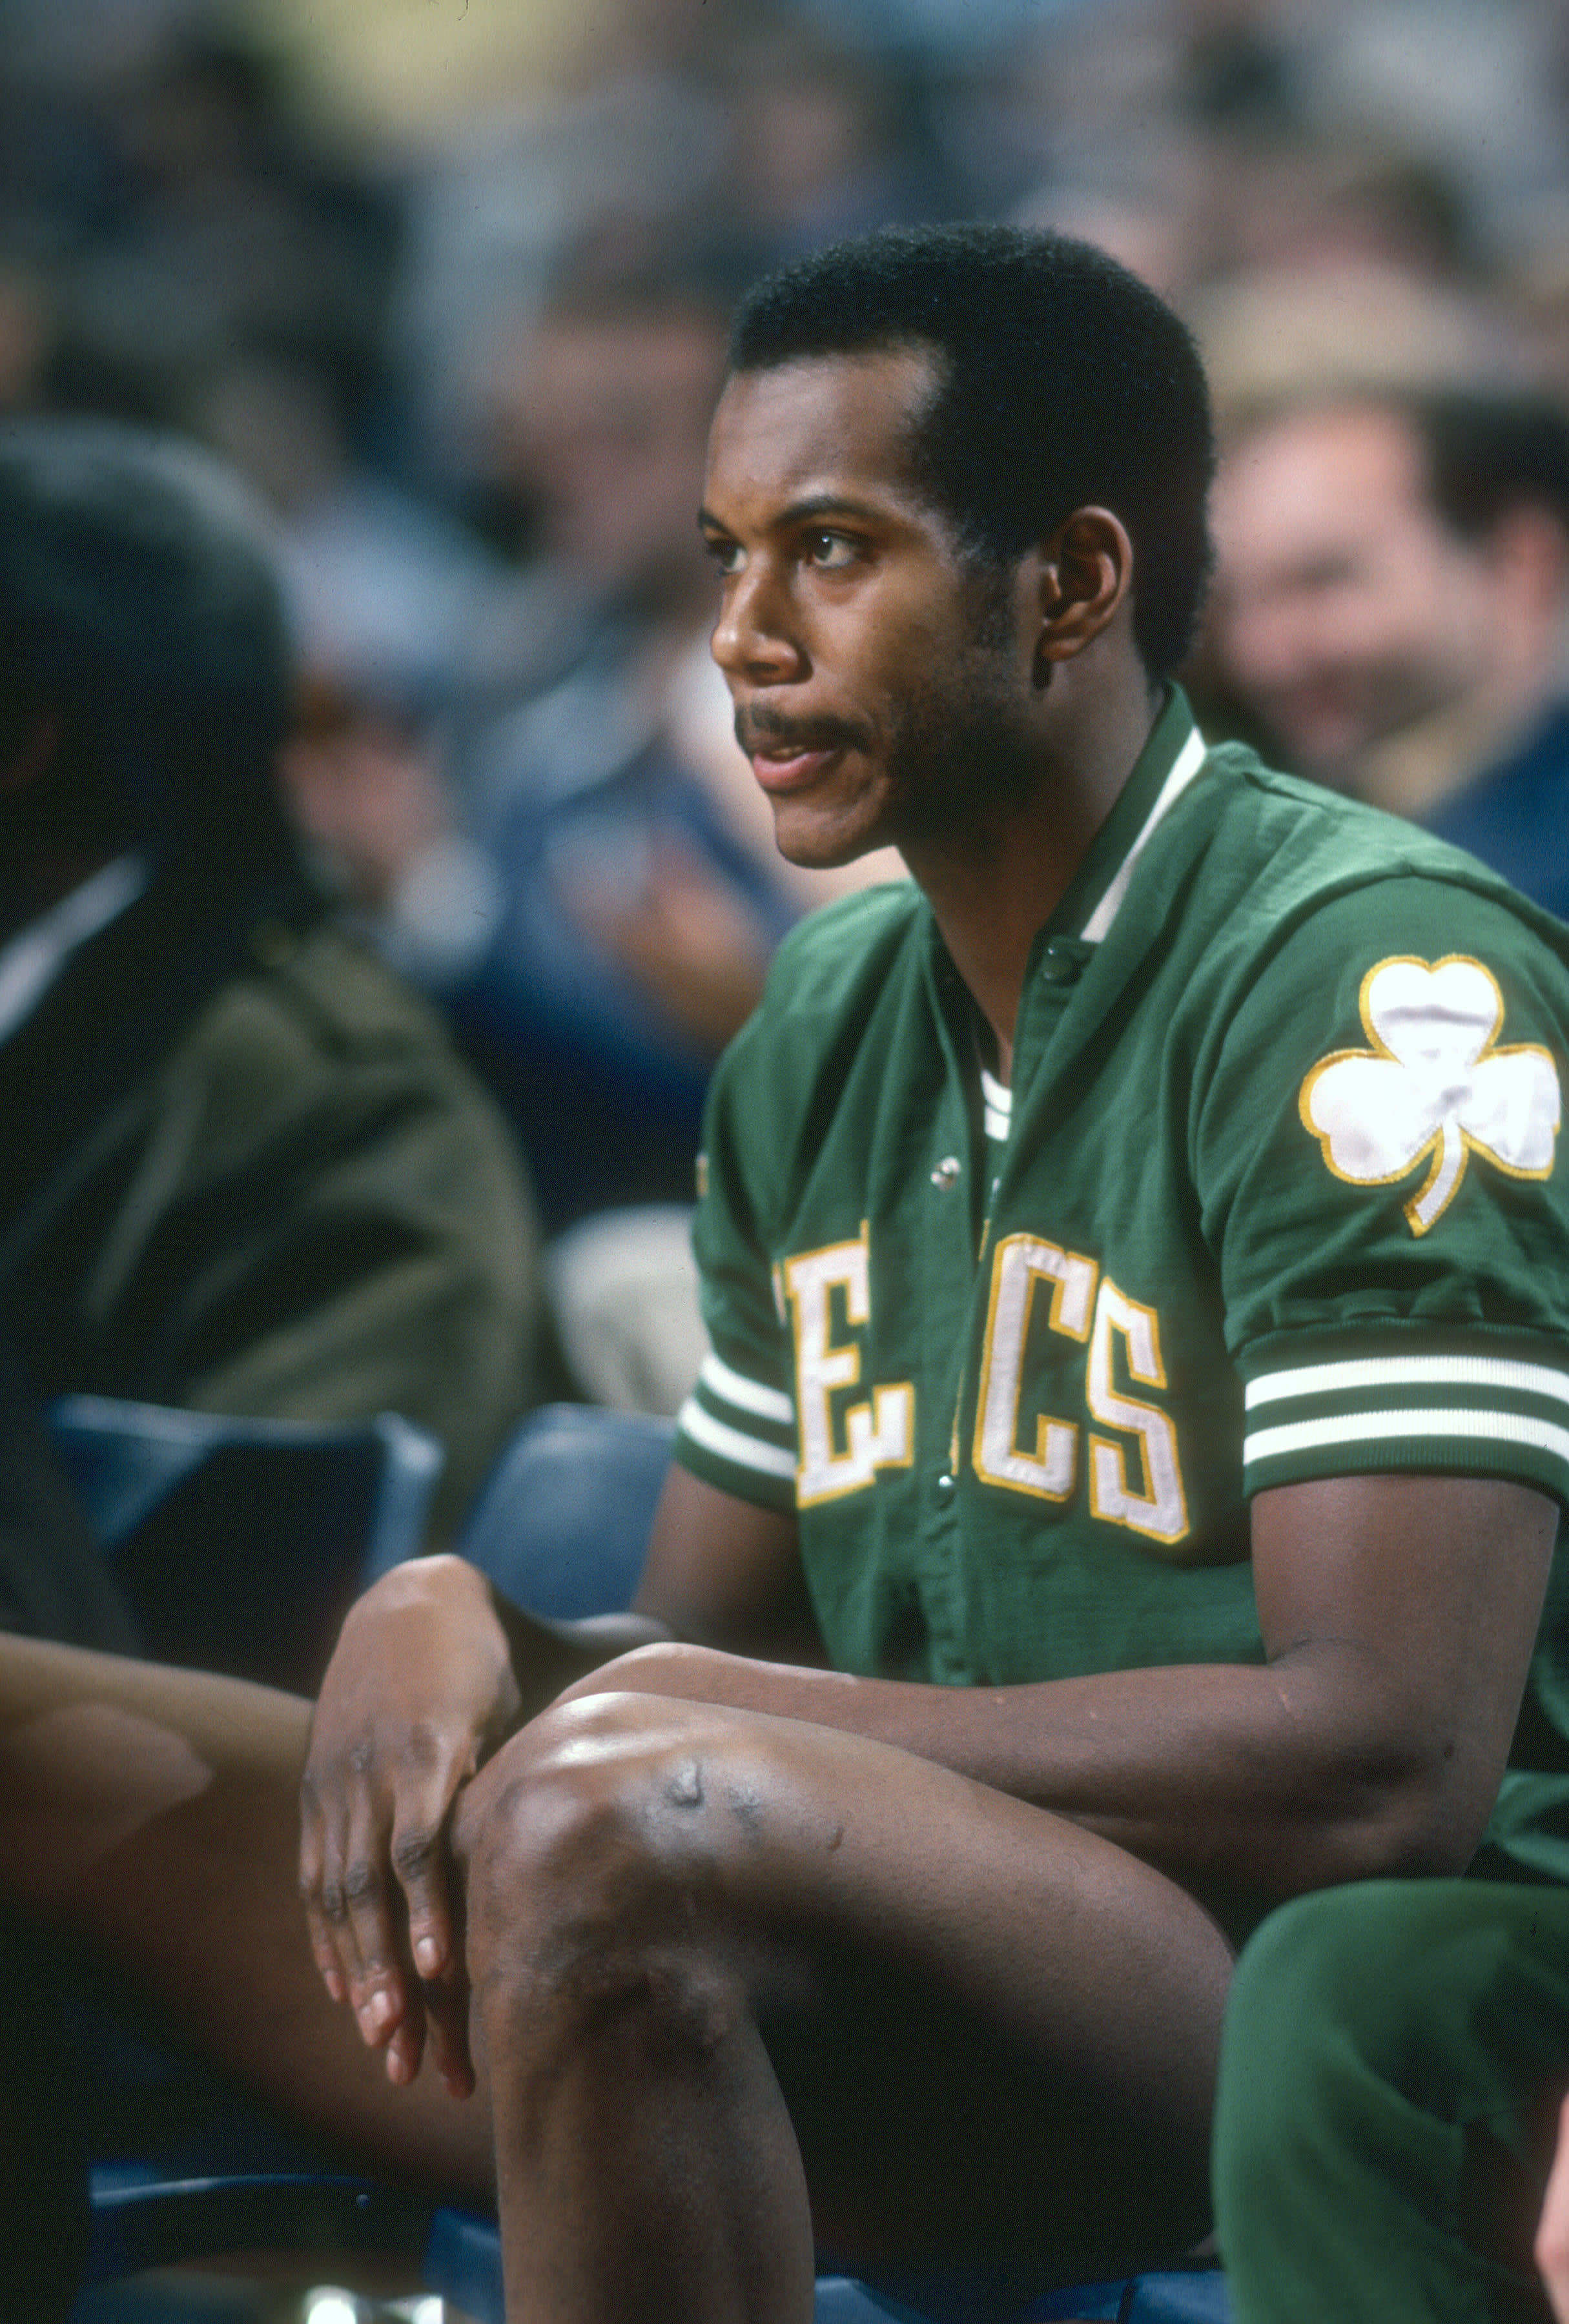 Former NBA player Kermit Washington charged by the Department of